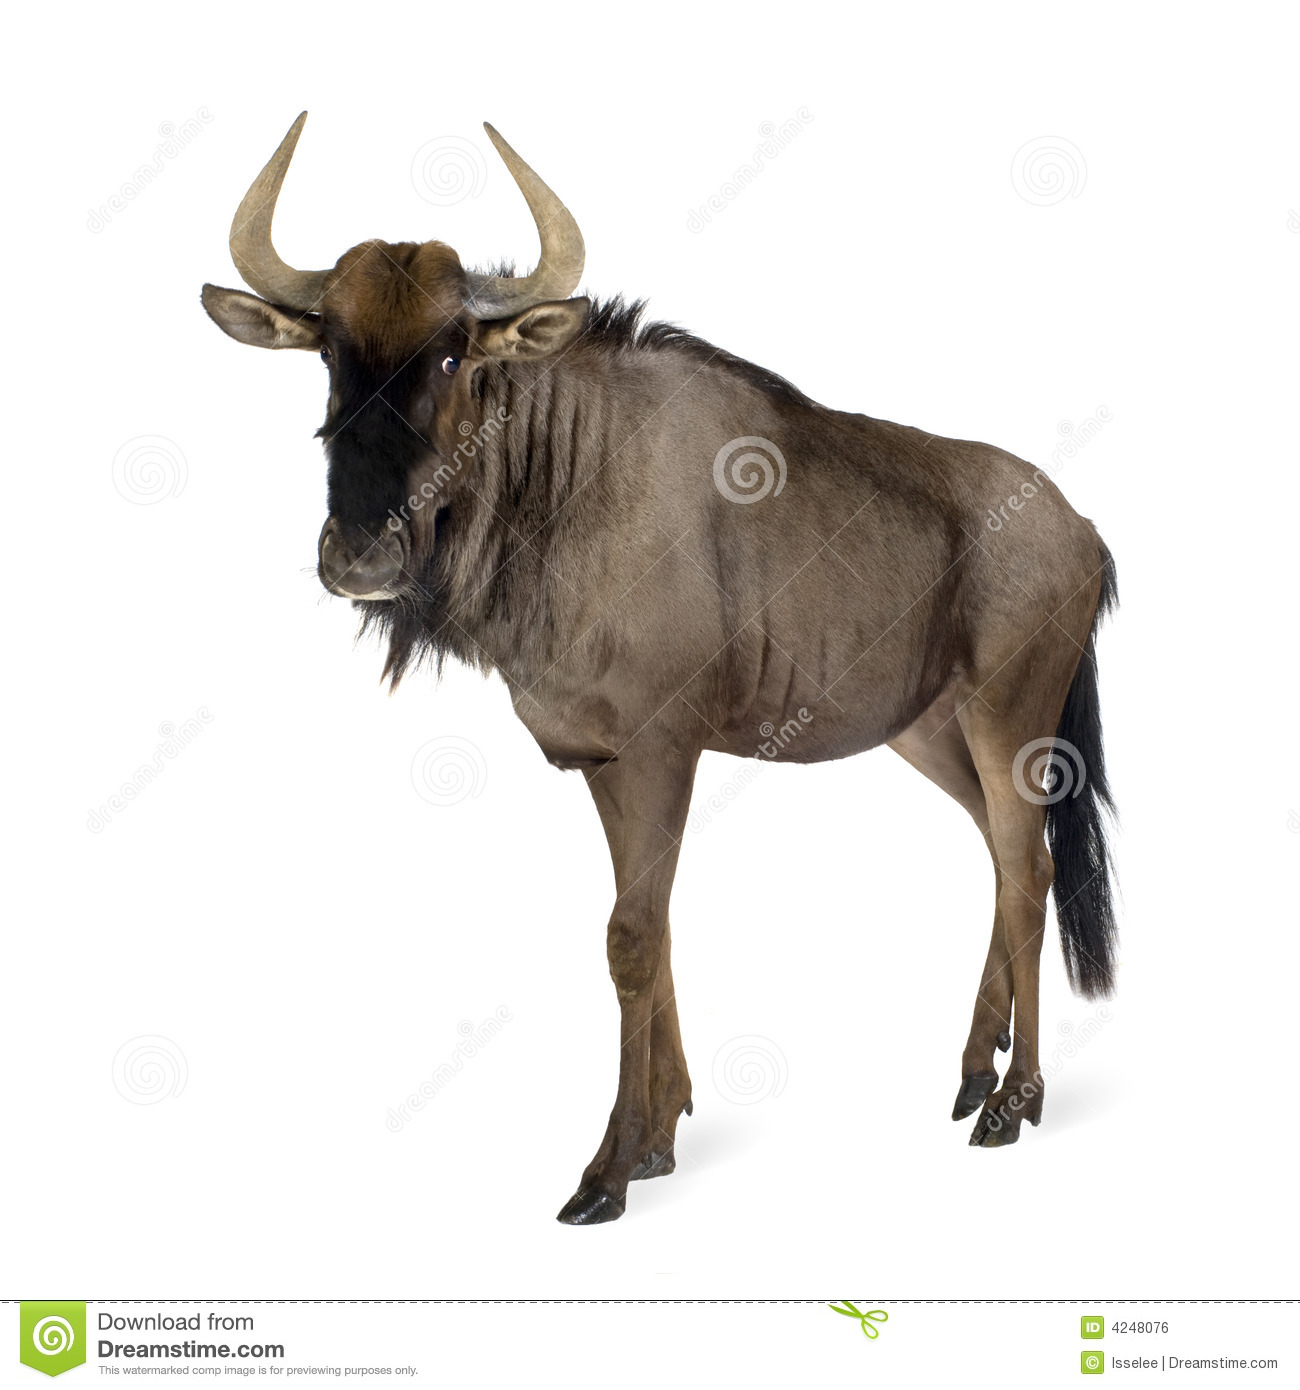 Blue Wildebeest clipart #14, Download drawings